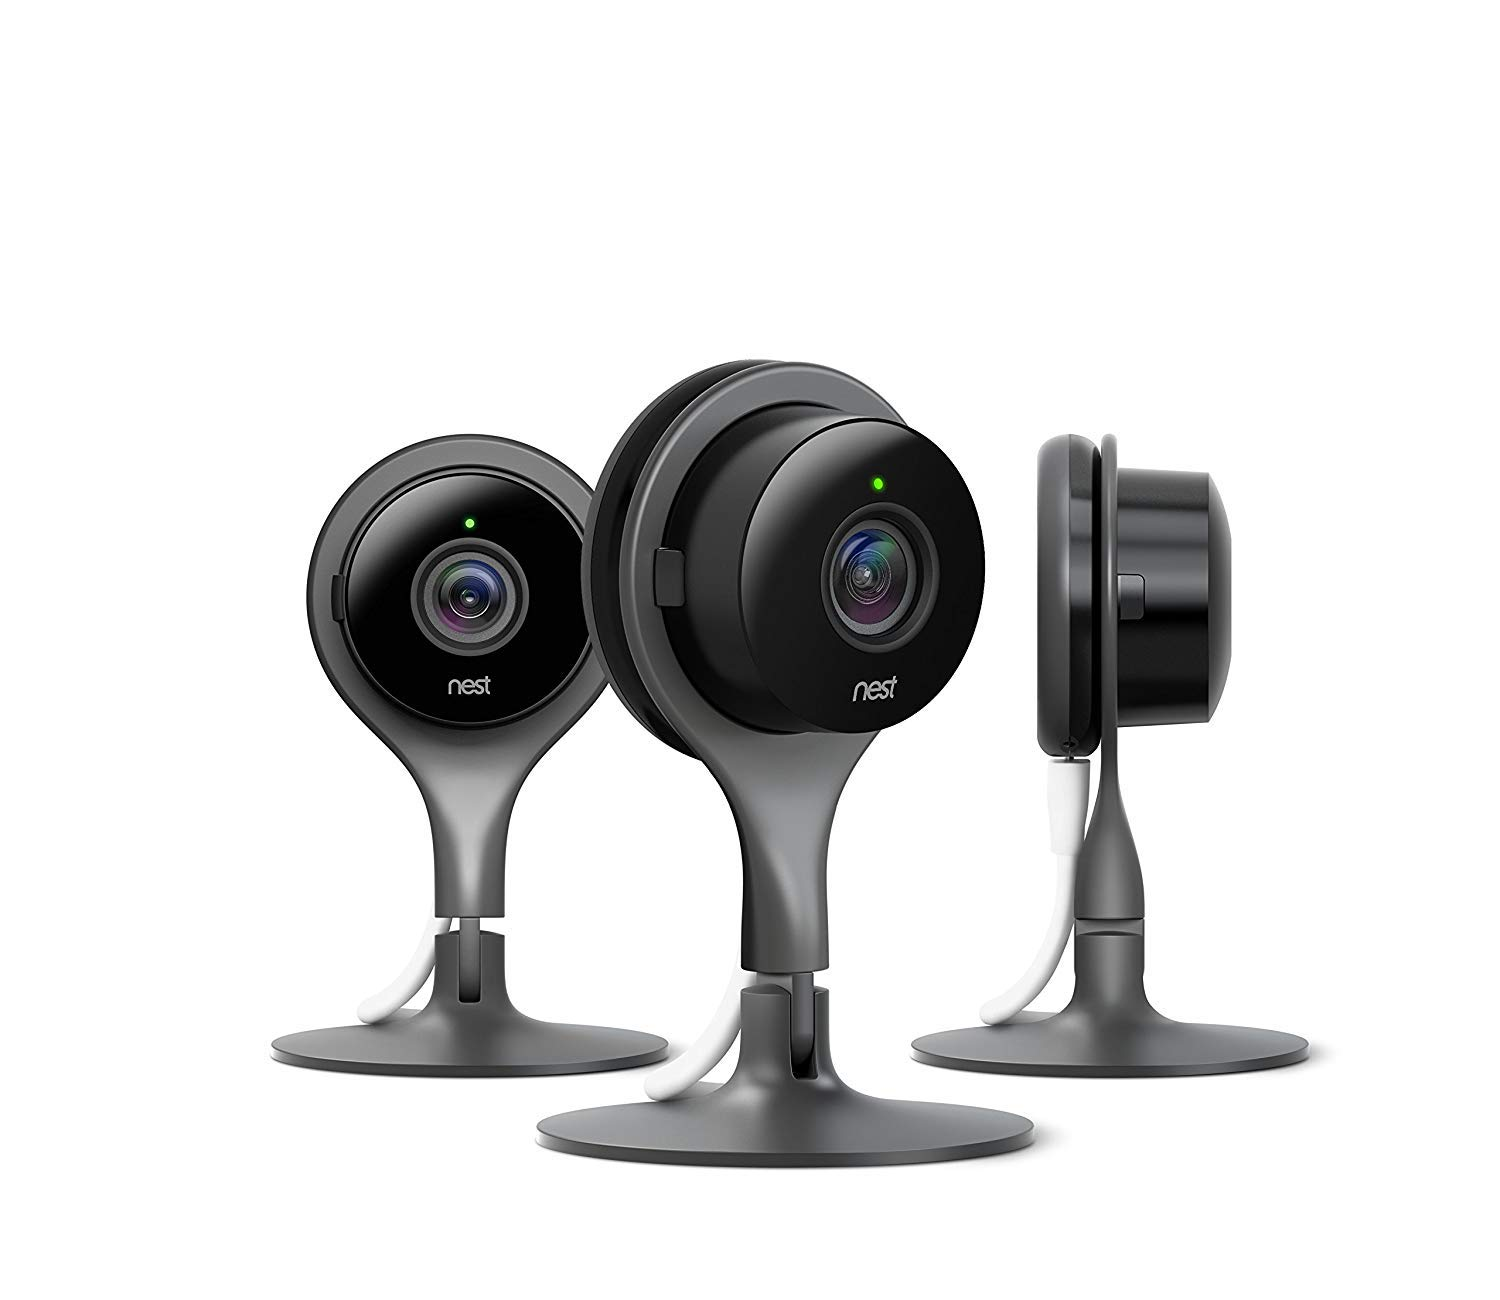 Tonton 8CH 5MP Home Security Camera System,8-Channel Ultra HD 4K 8MP DVR Recorder with 4 5.0MP 2592 X 1944 Outdoor Bullet Cameras,Smart Motion Detection,PIR Sensor,Night Vision up to 100ft NO HDD